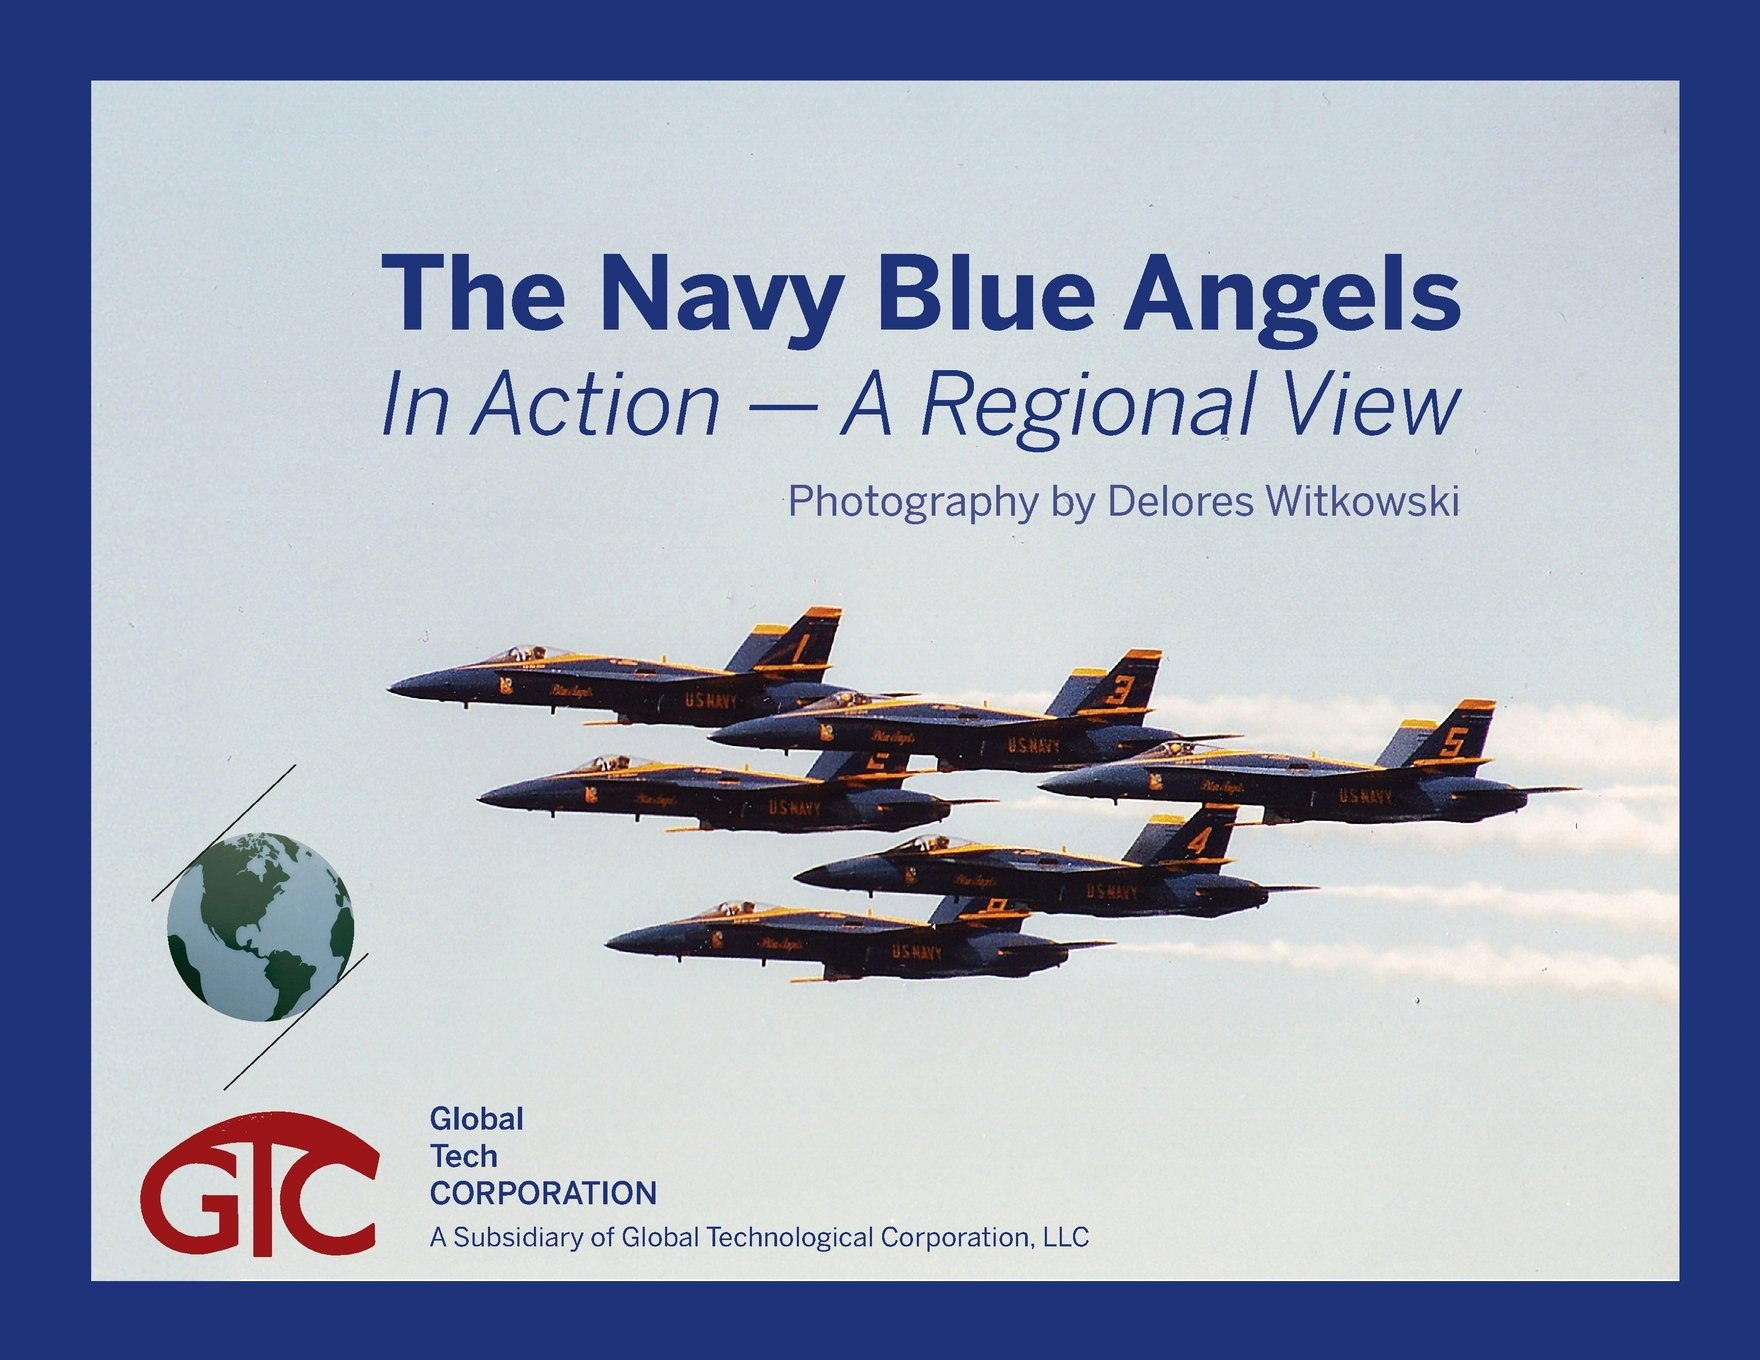 The Navy Blue Angels: In Action - A Regional View